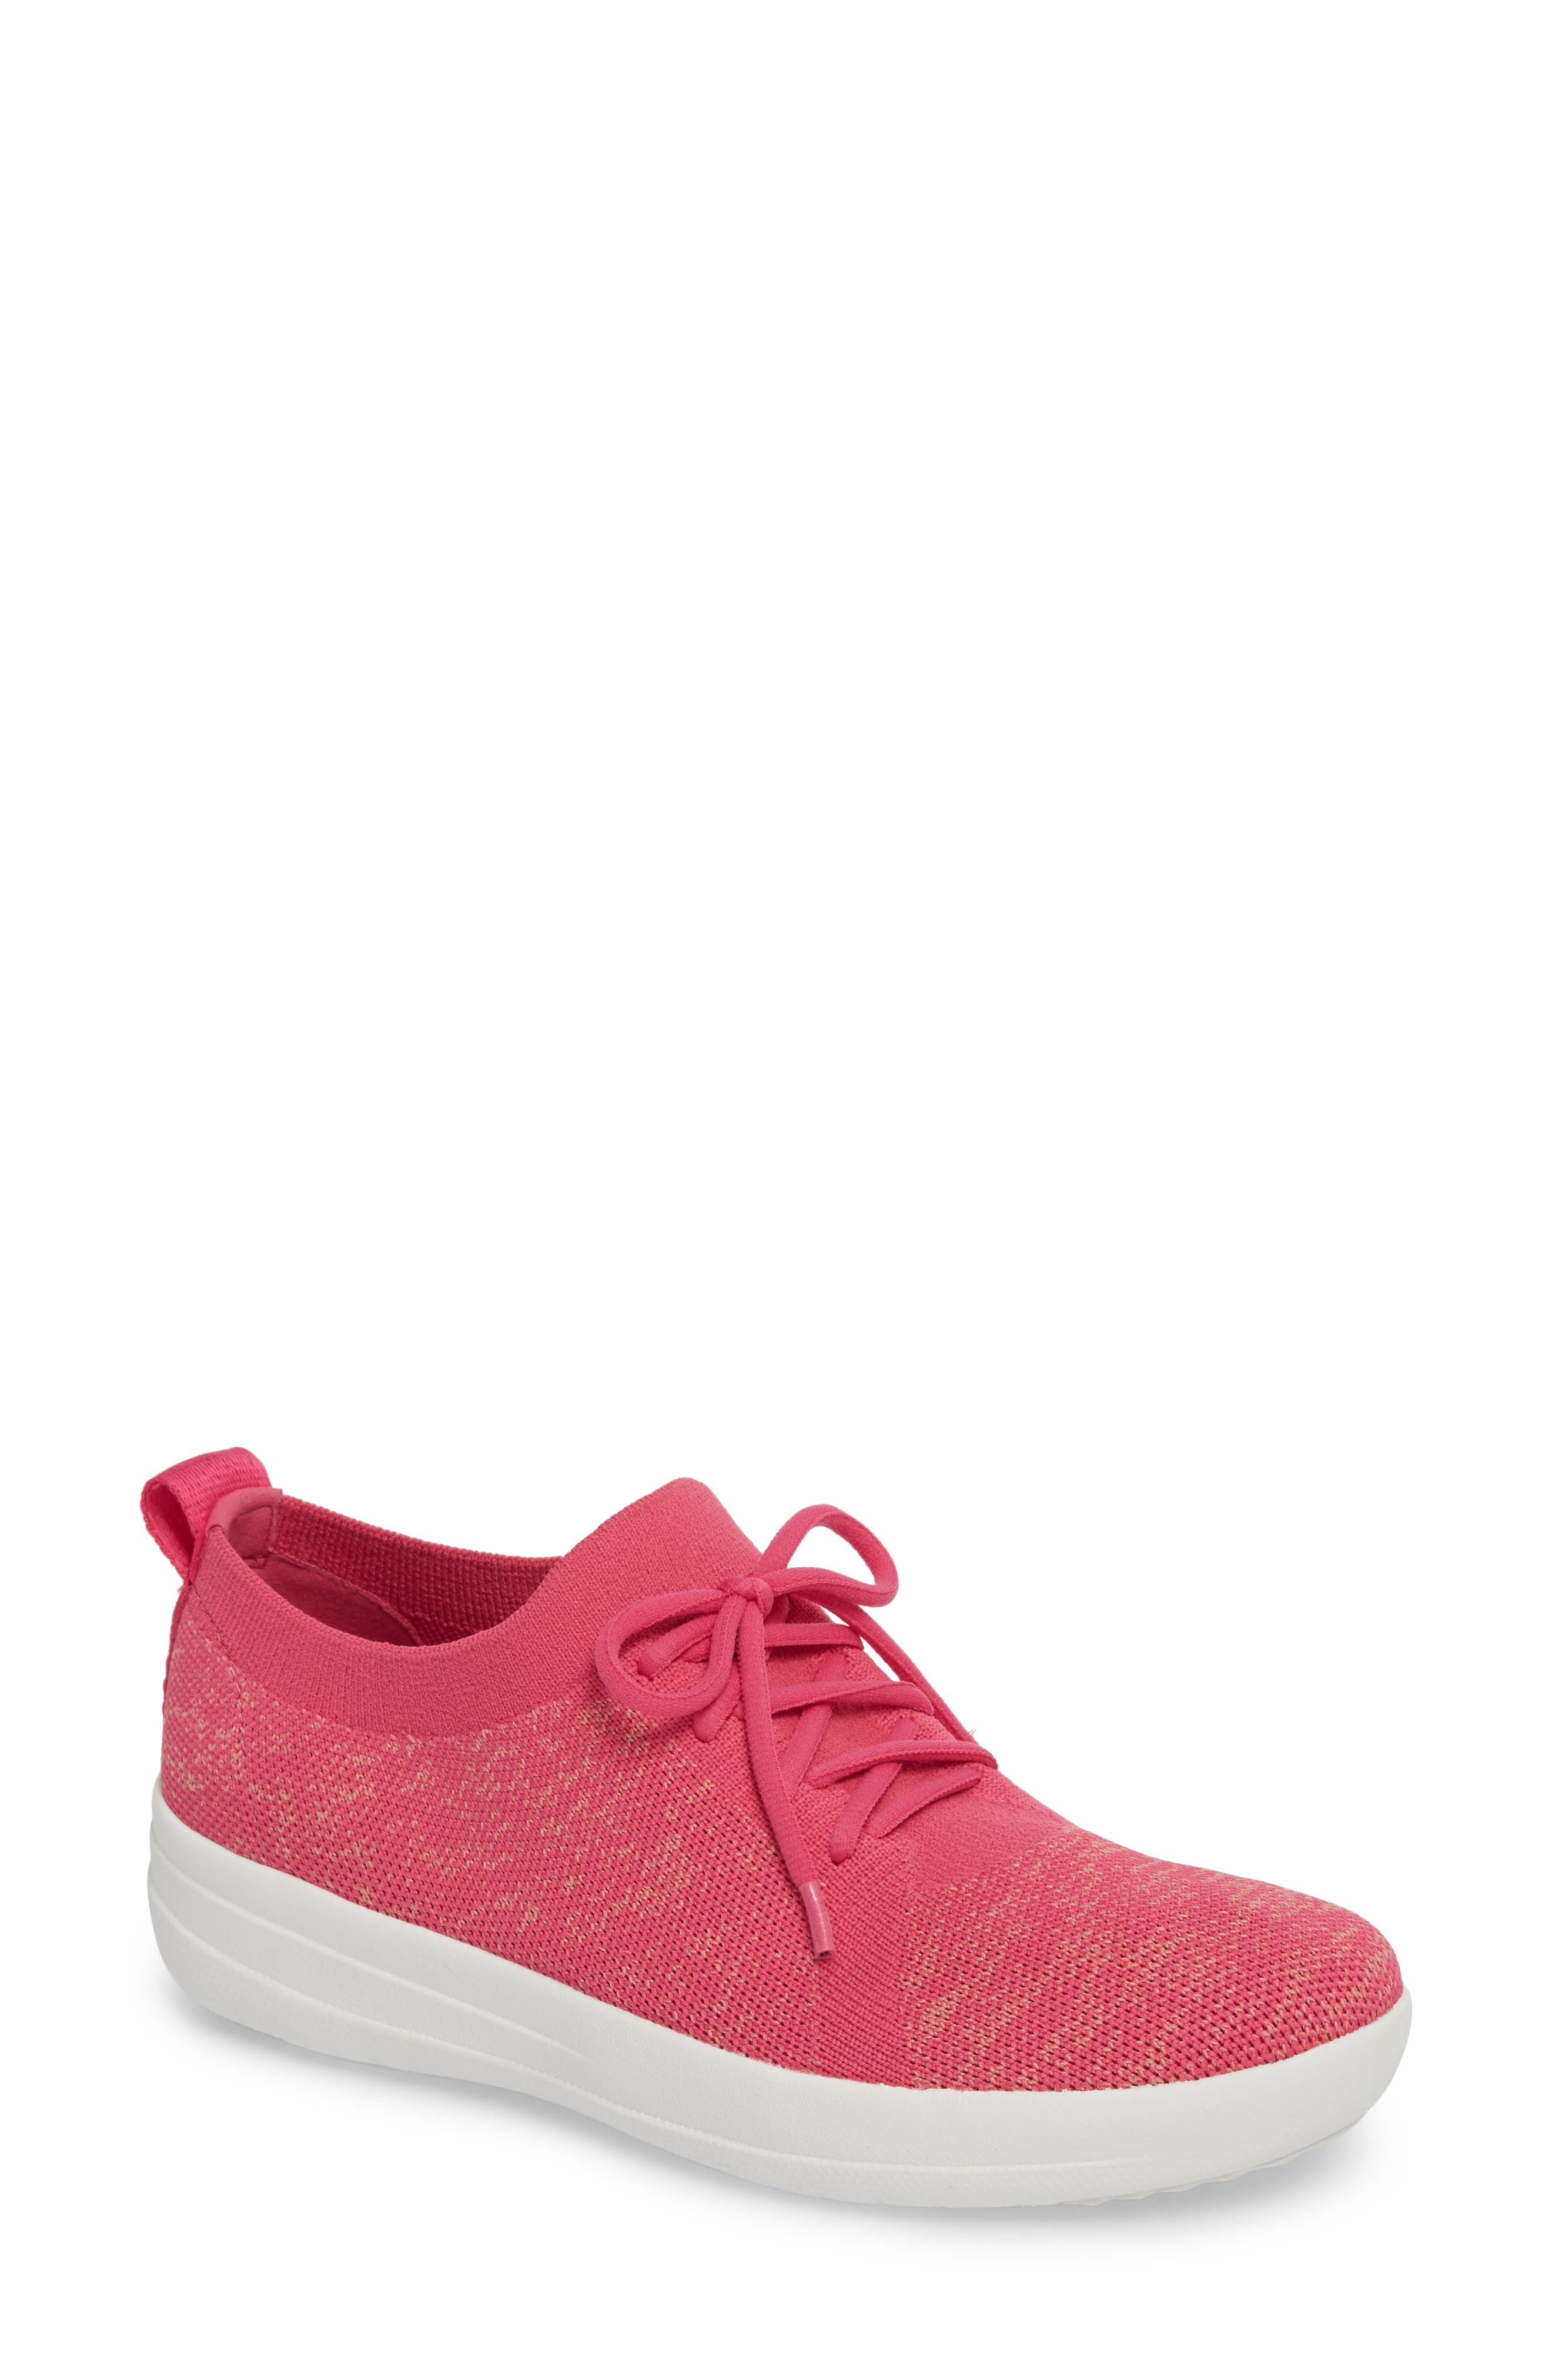 F-Sporty Uberknit<sup>™</sup> Sneaker,                             Main thumbnail 1, color,                             FUCHSIA/ DUSTY PINK